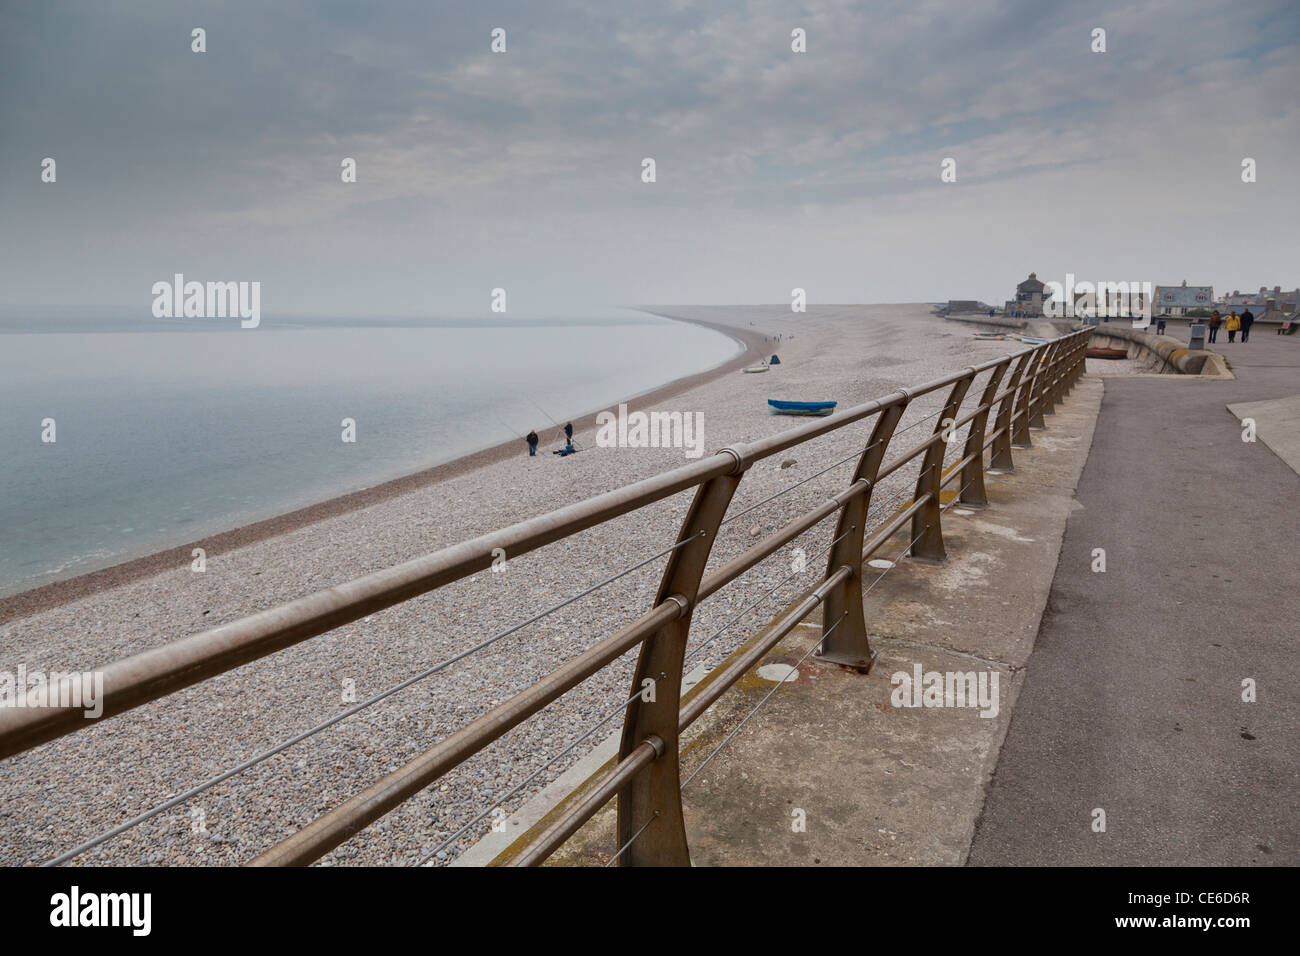 Sparsely populated Chesil Beach, Dorset, looking west. - Stock Image